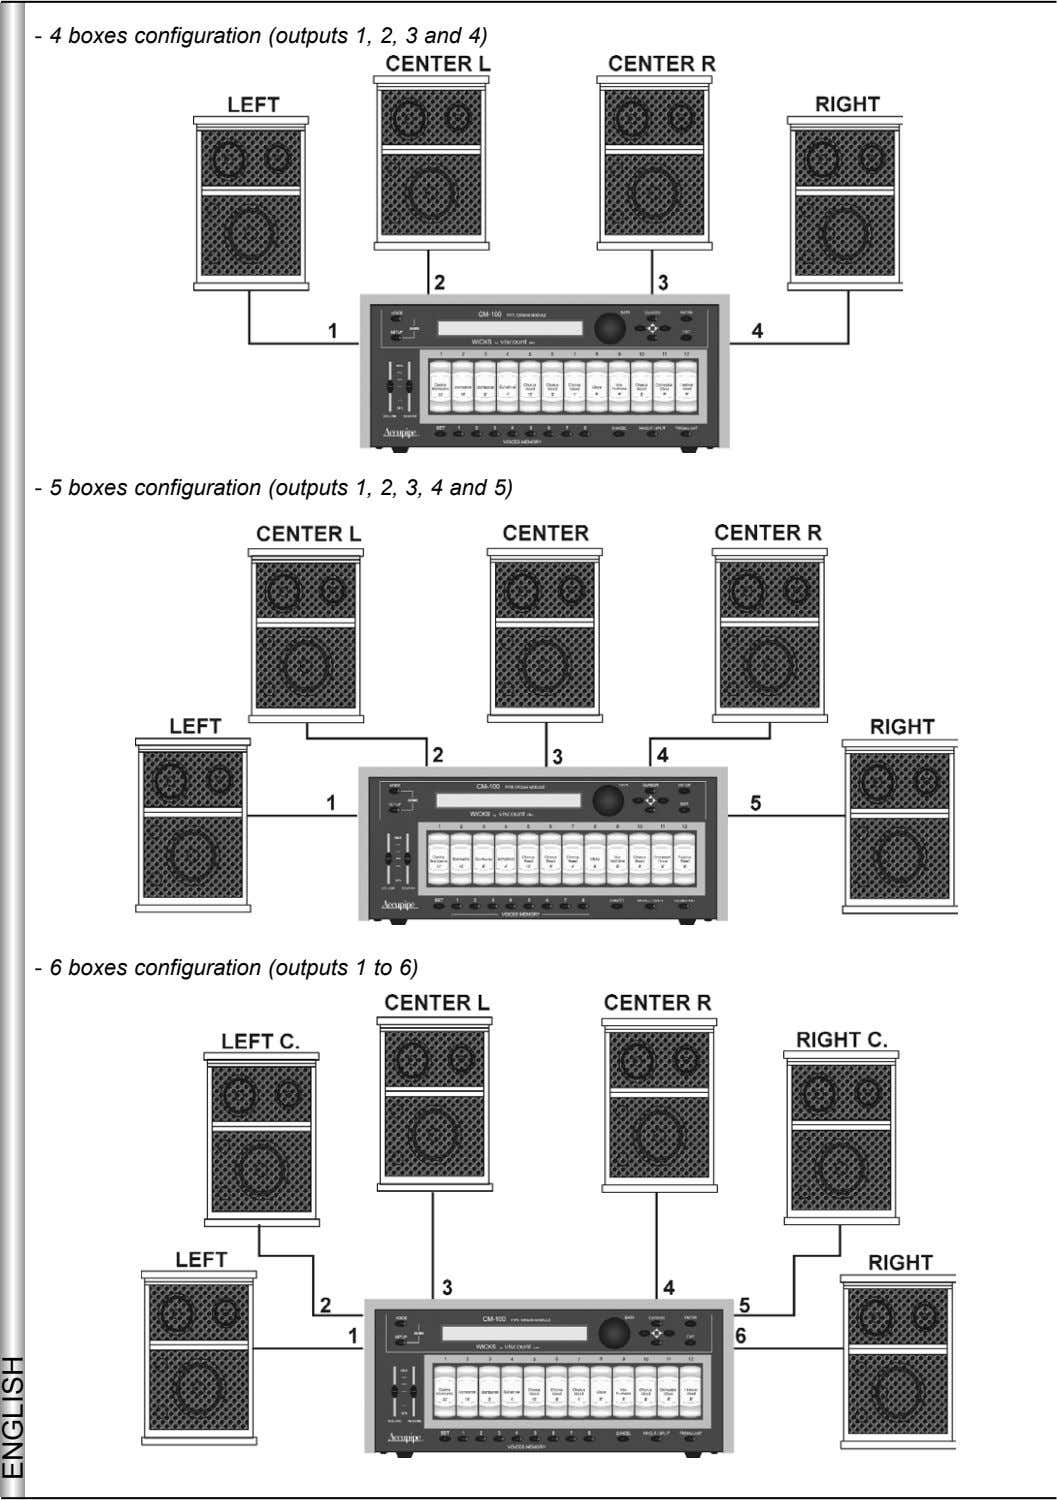 - 4 boxes configuration (outputs 1, 2, 3 and 4) - 5 boxes configuration (outputs